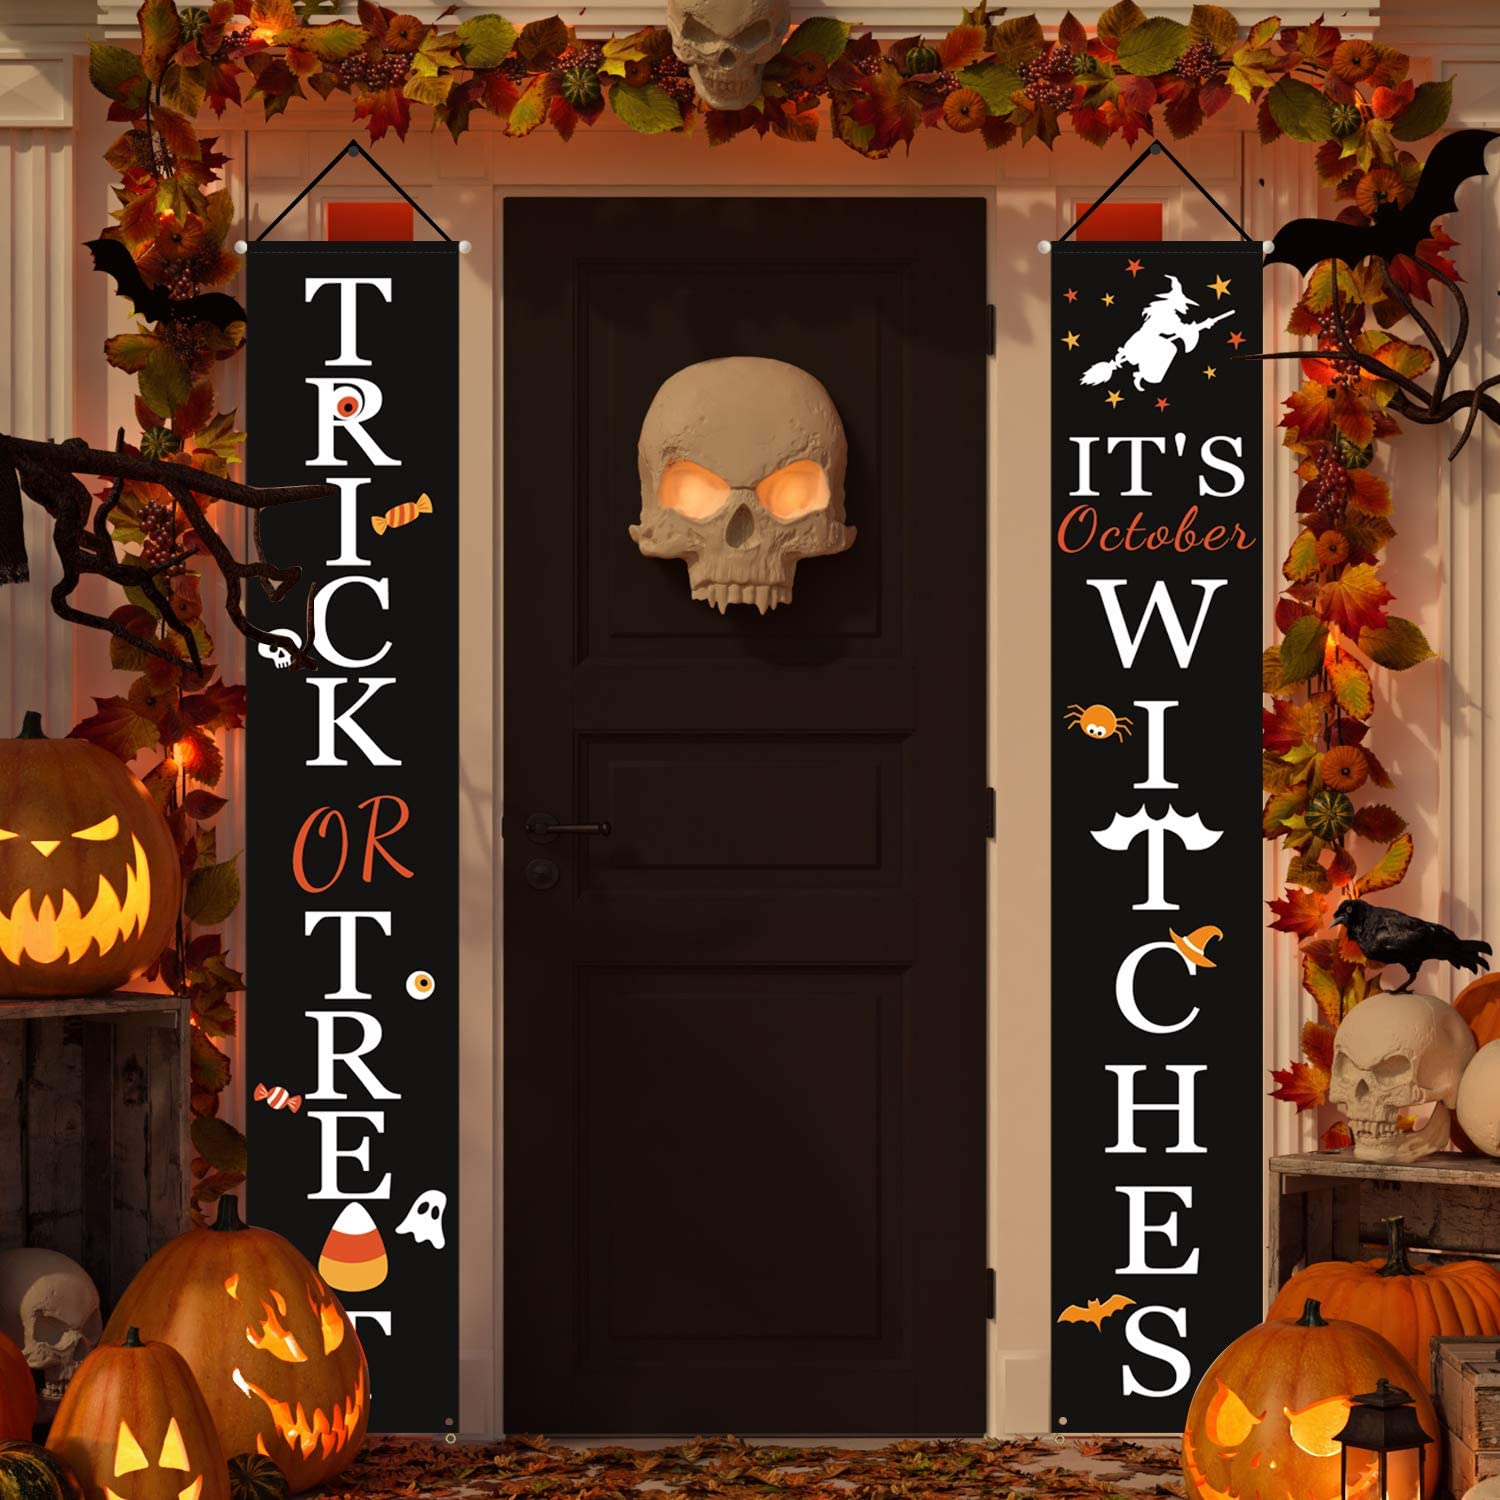 Dazonge Halloween Decorations Outdoor Trick or Treat & It s October Witches Halloween Signs for Front Door or Indoor Home Decor